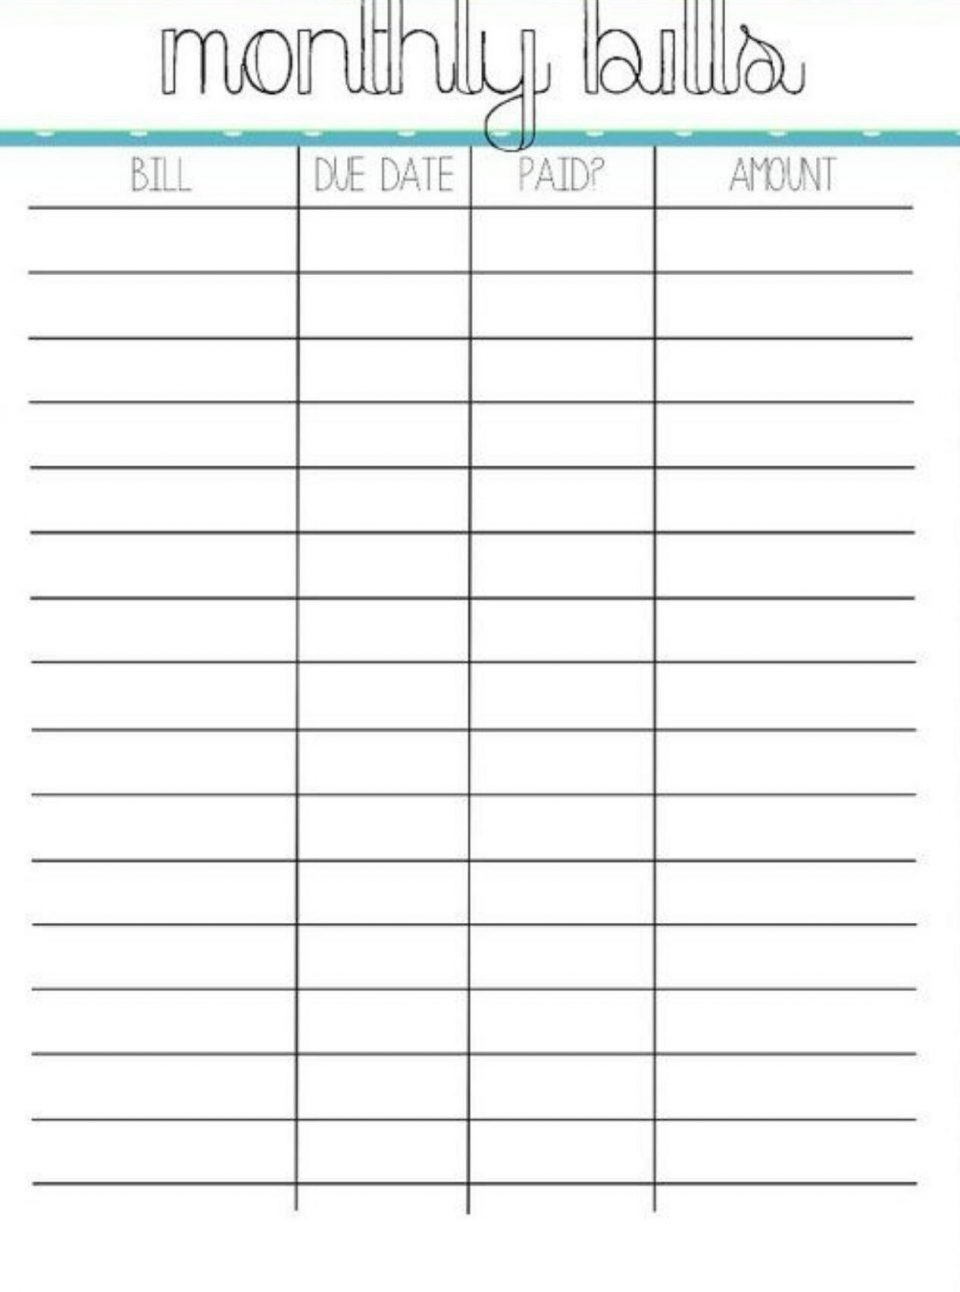 Monthly Bill Sample With Free Printable Organizer Template  Printable Monthly Bill Pay